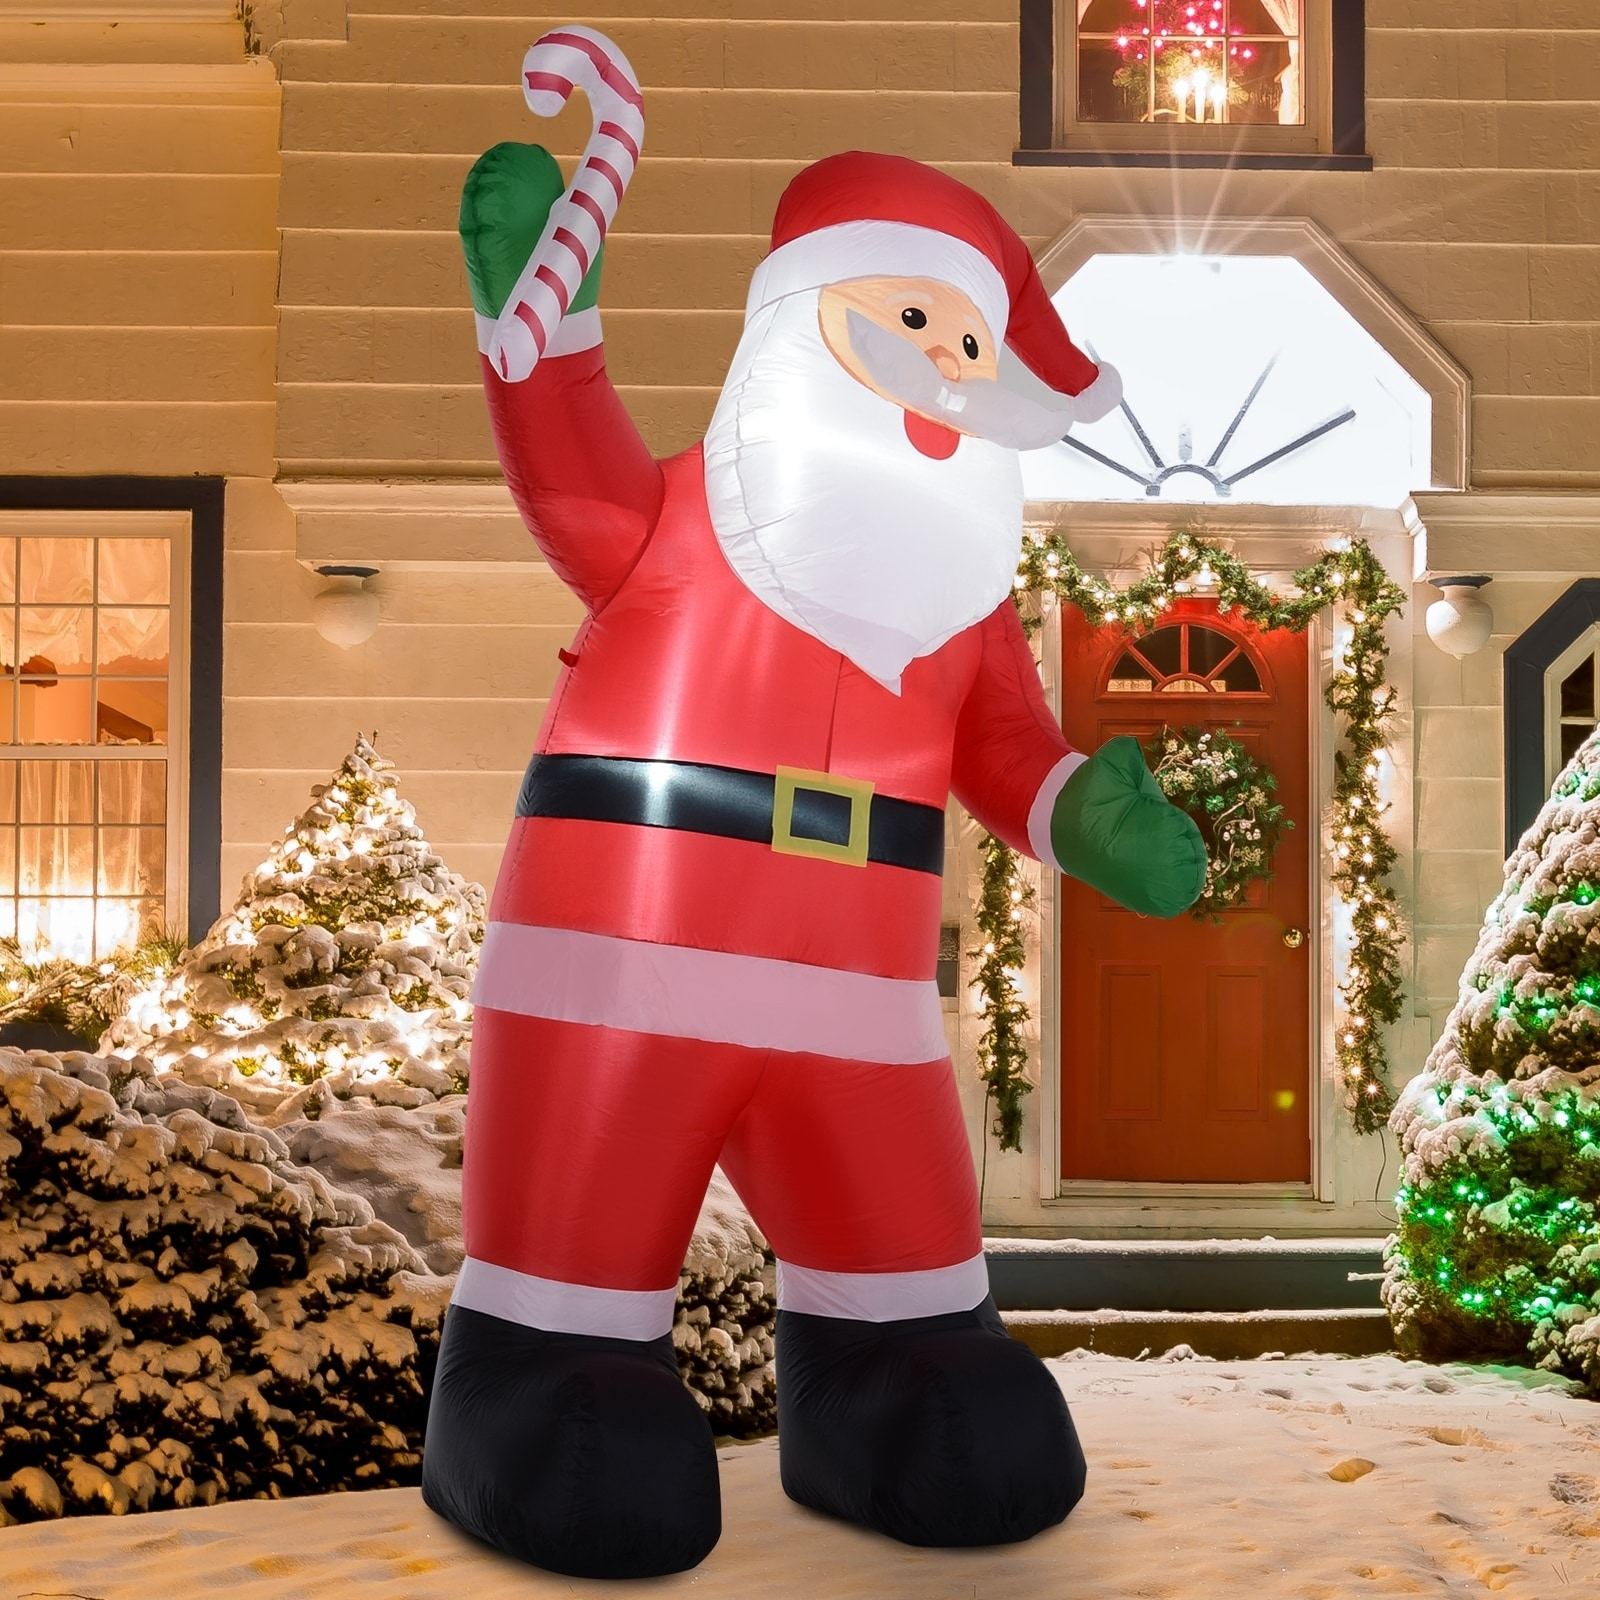 8 H Christmas Holiday Yard Inflatable Outdoor Light Up LED Airblown Decoration Smiling Santa with Candy Cane